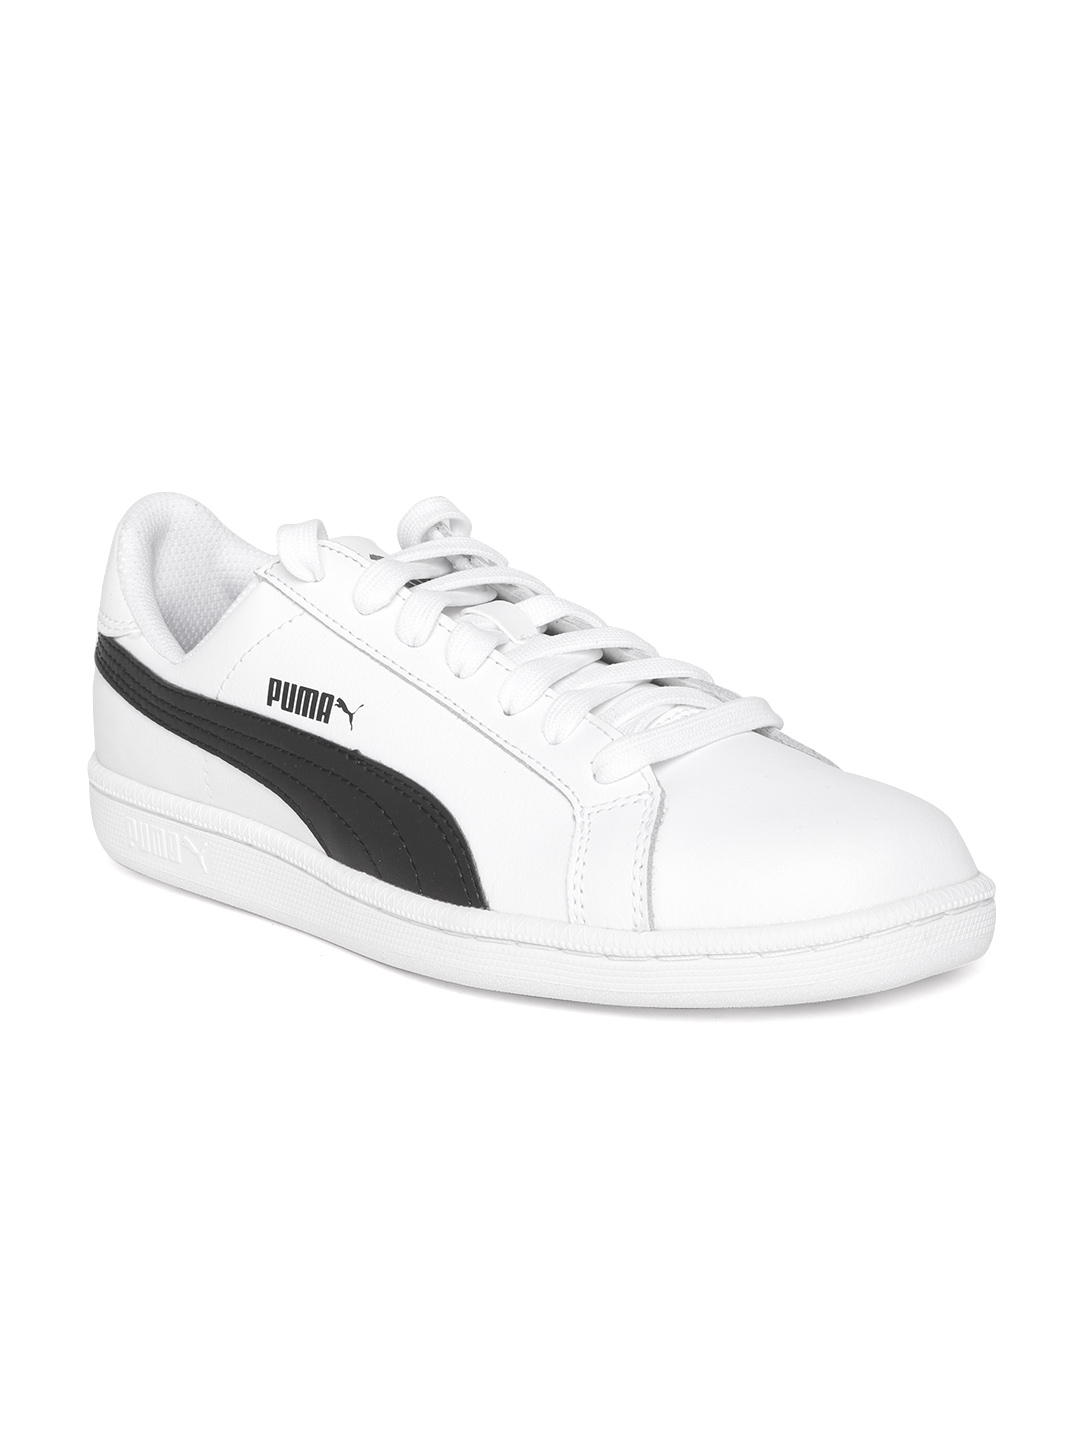 Buy PUMA Men White Smash Leather Sneakers - Casual Shoes for Men ... 4bfcc9e61